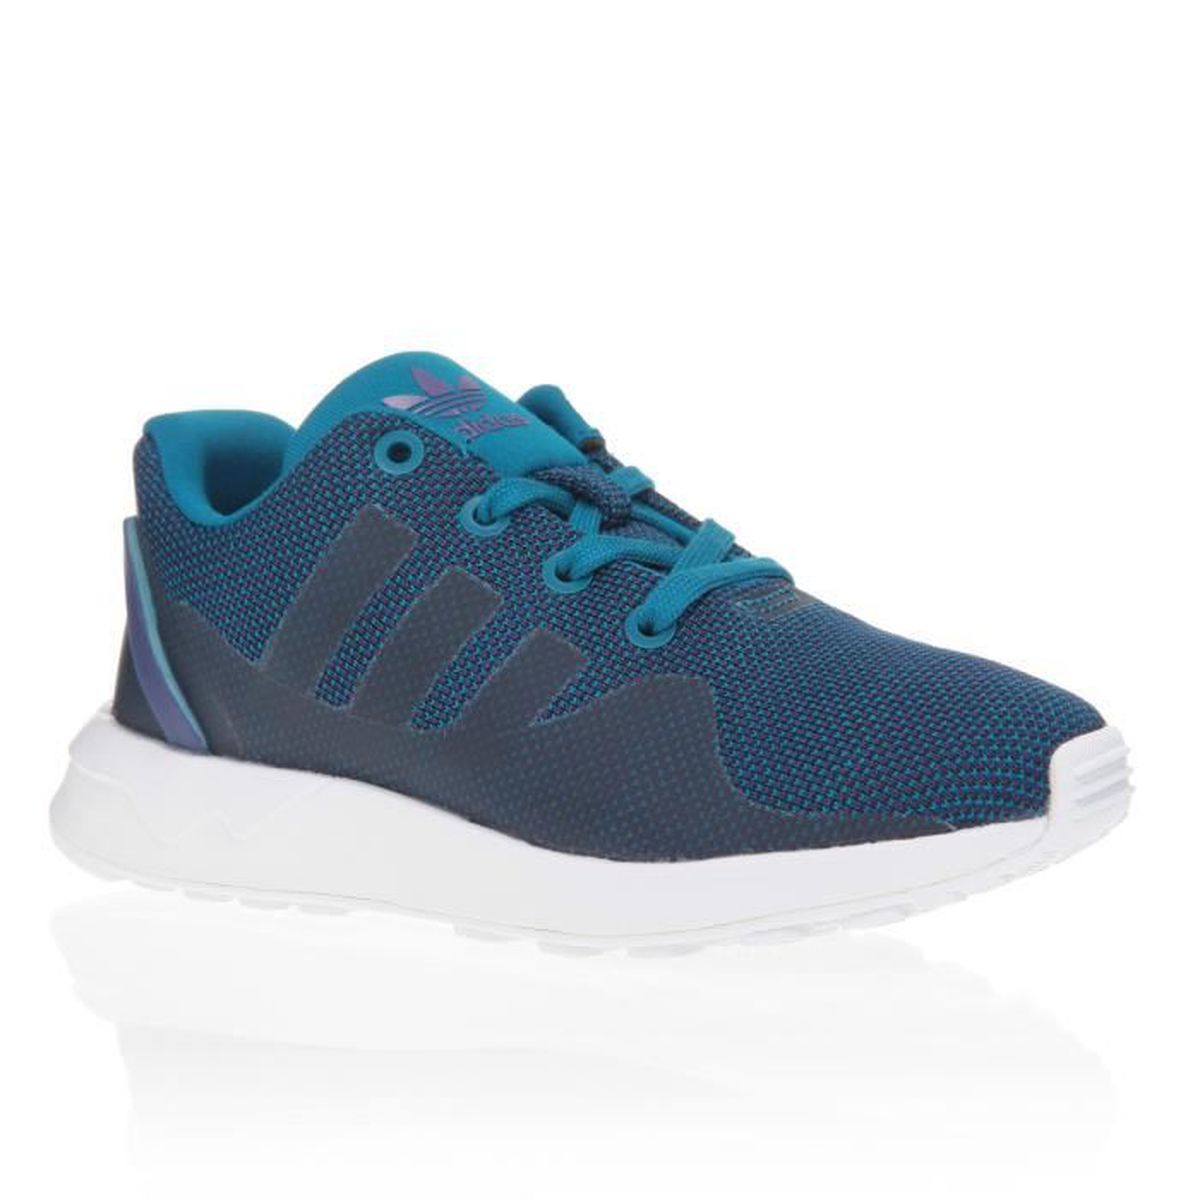 ADIDAS ORIGINALS Baskets ZX Flux JR Chaussures Enf